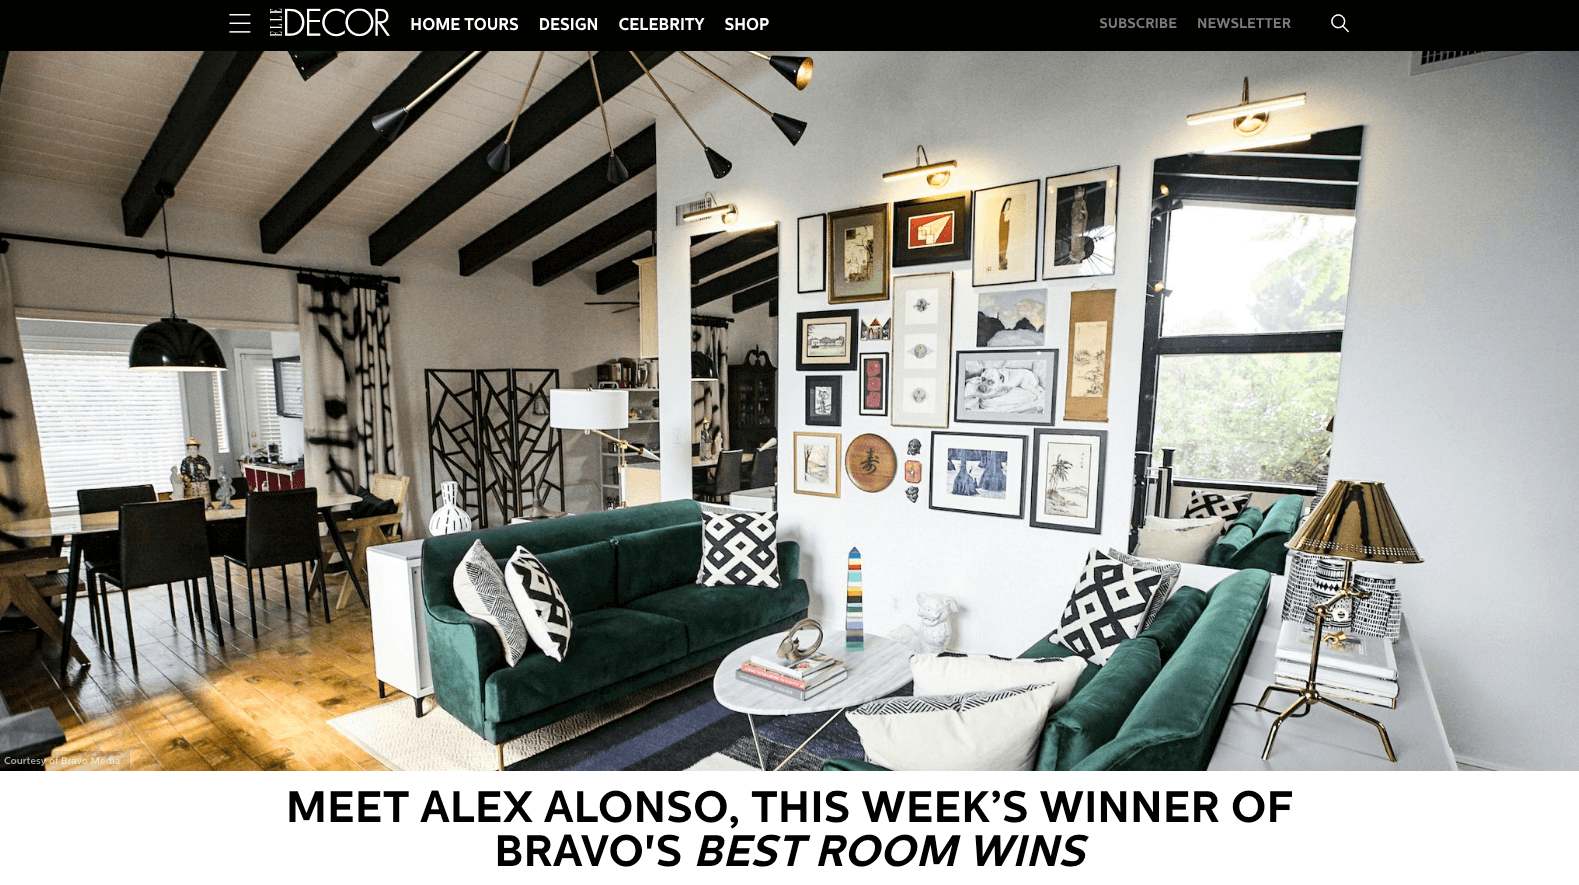 Alex Alonso Featured In Elledecor.com